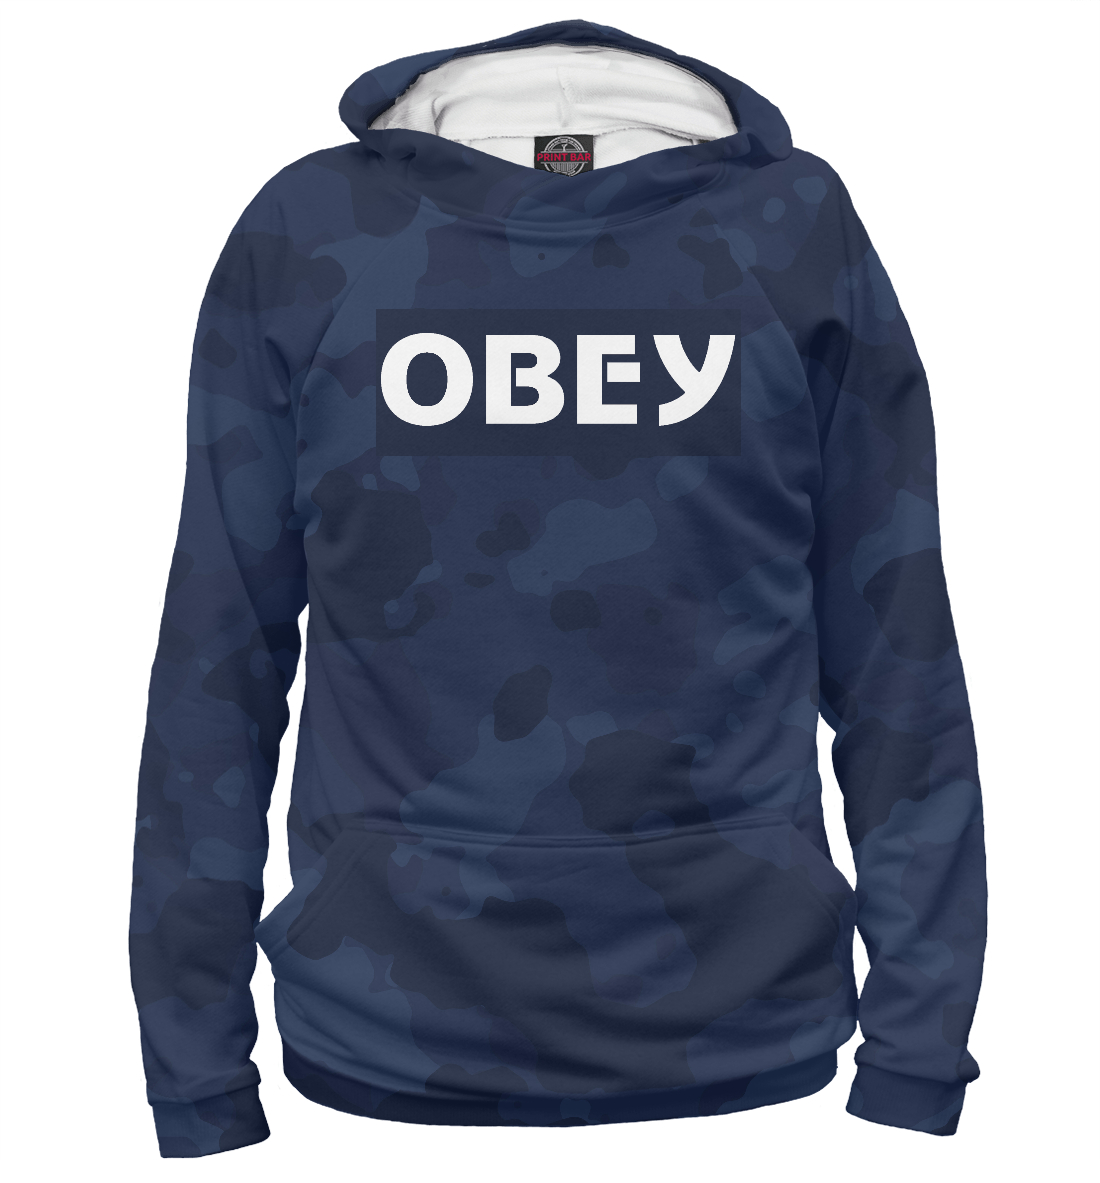 OBEY style collection 2018